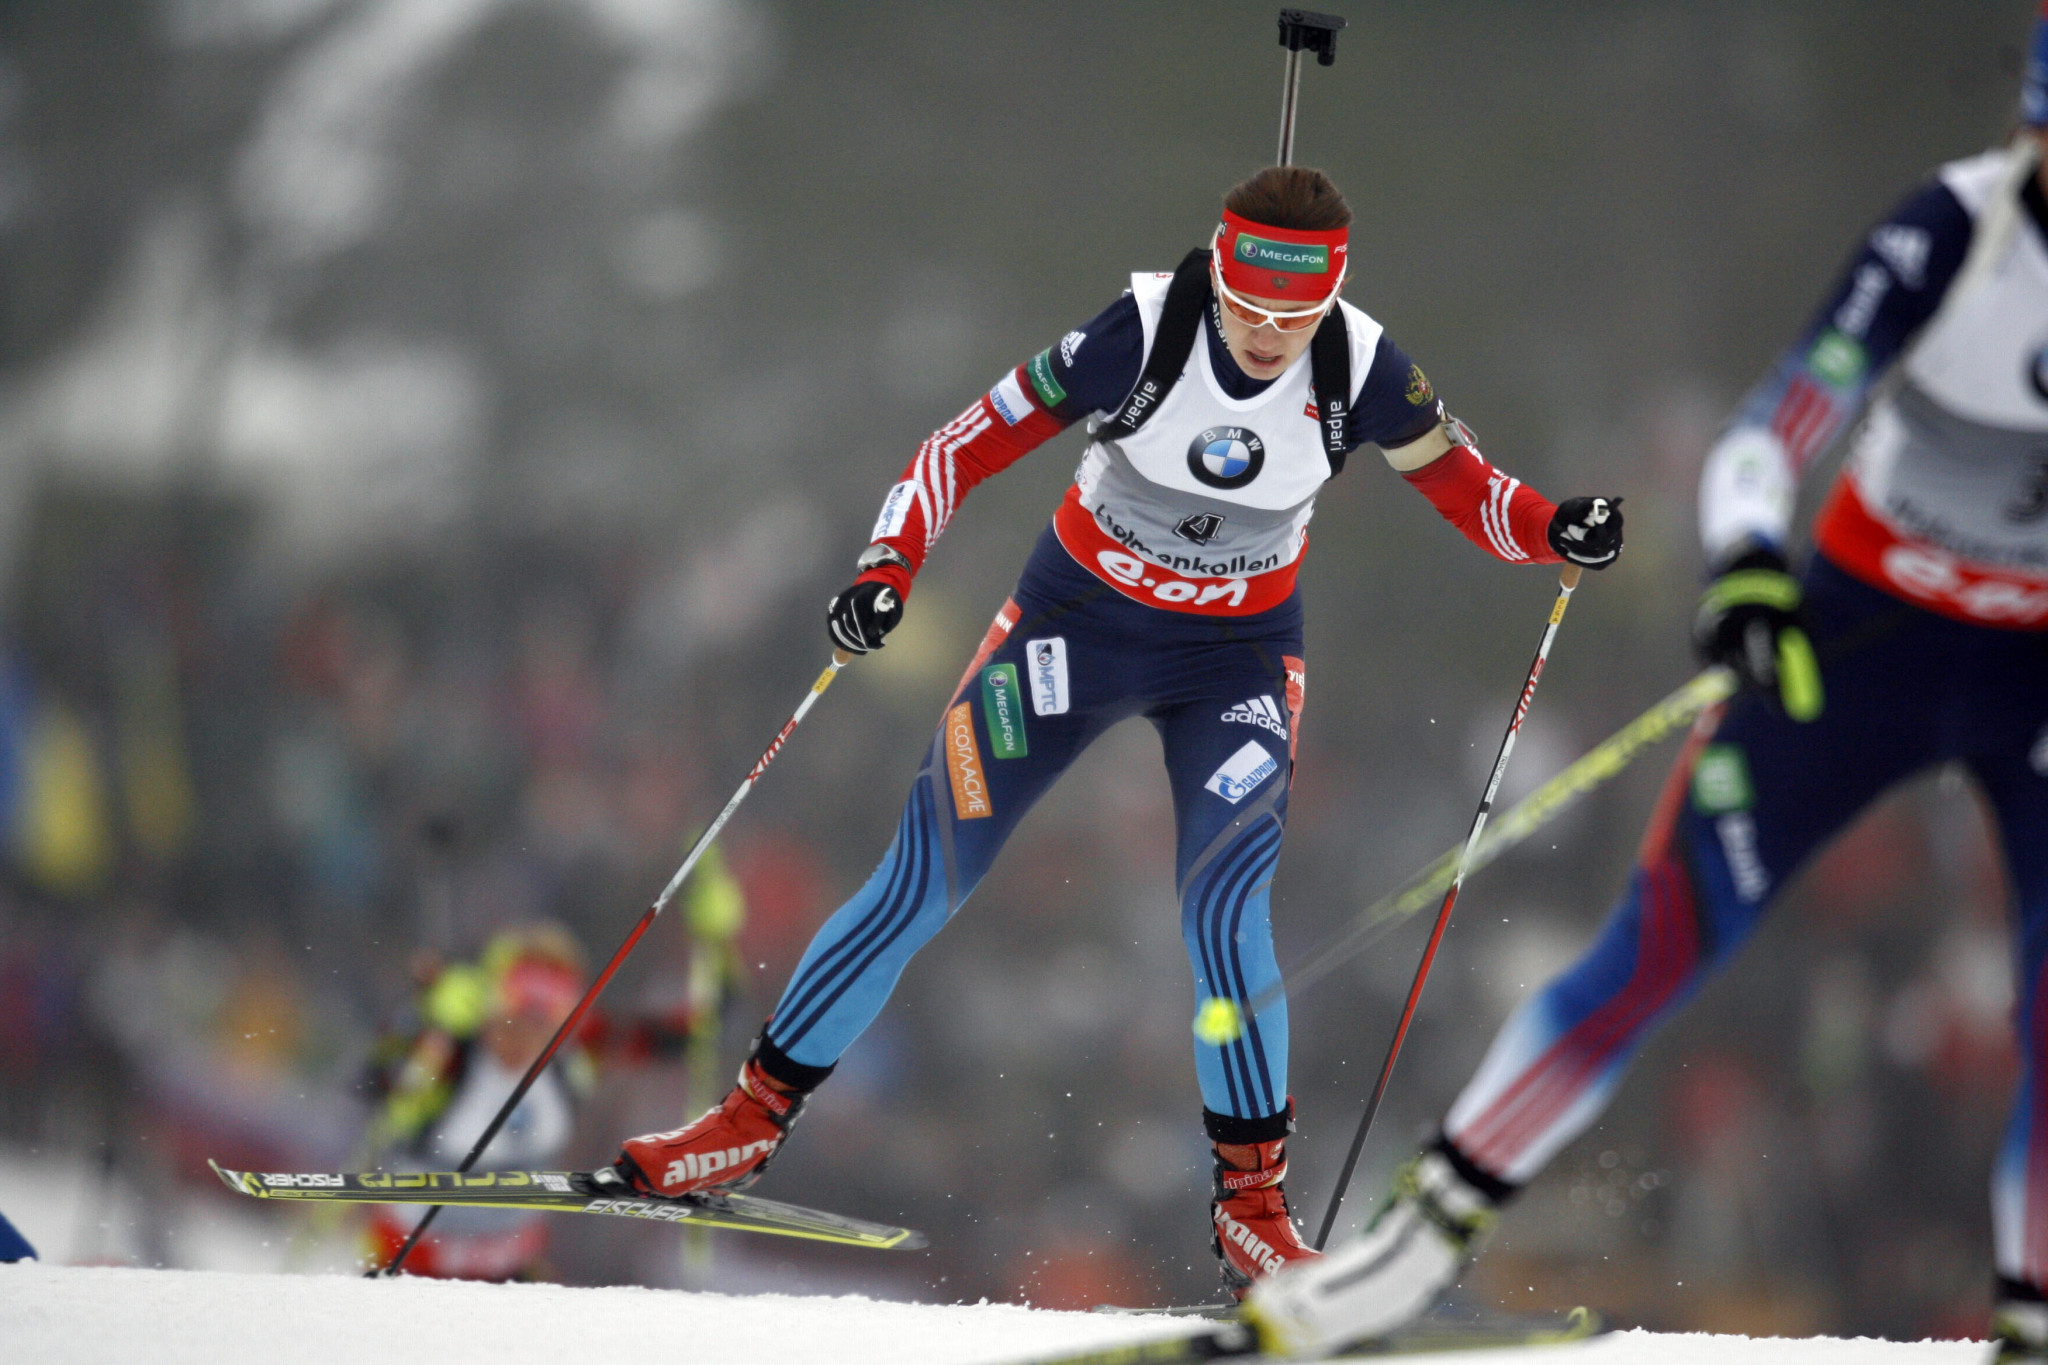 Olga Vilukhina is one of the three Russian biathletes that have brought a libel case against Grigory Rodchenkov ©Getty Images